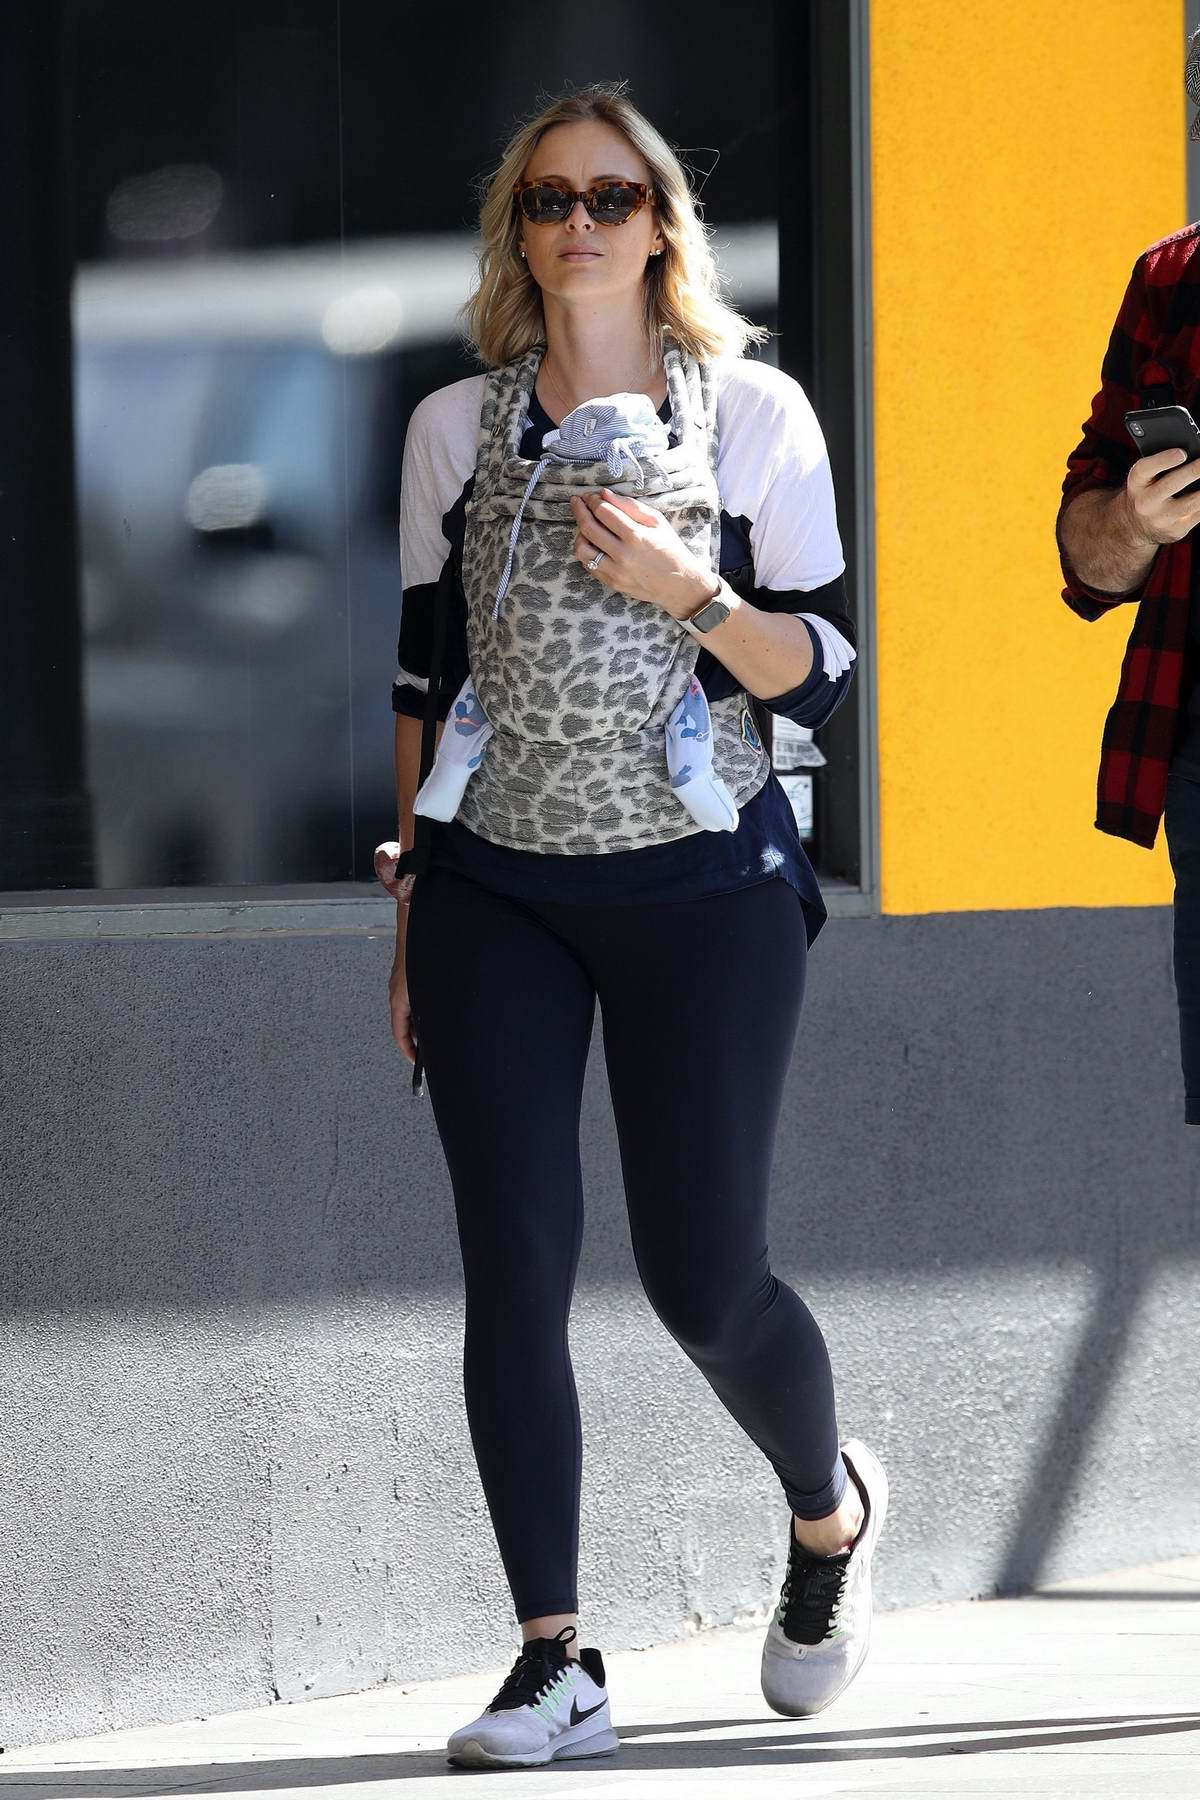 Sylvia Jeffreys sports a white shirt and black leggings while out for a stroll in Sydney, Australia